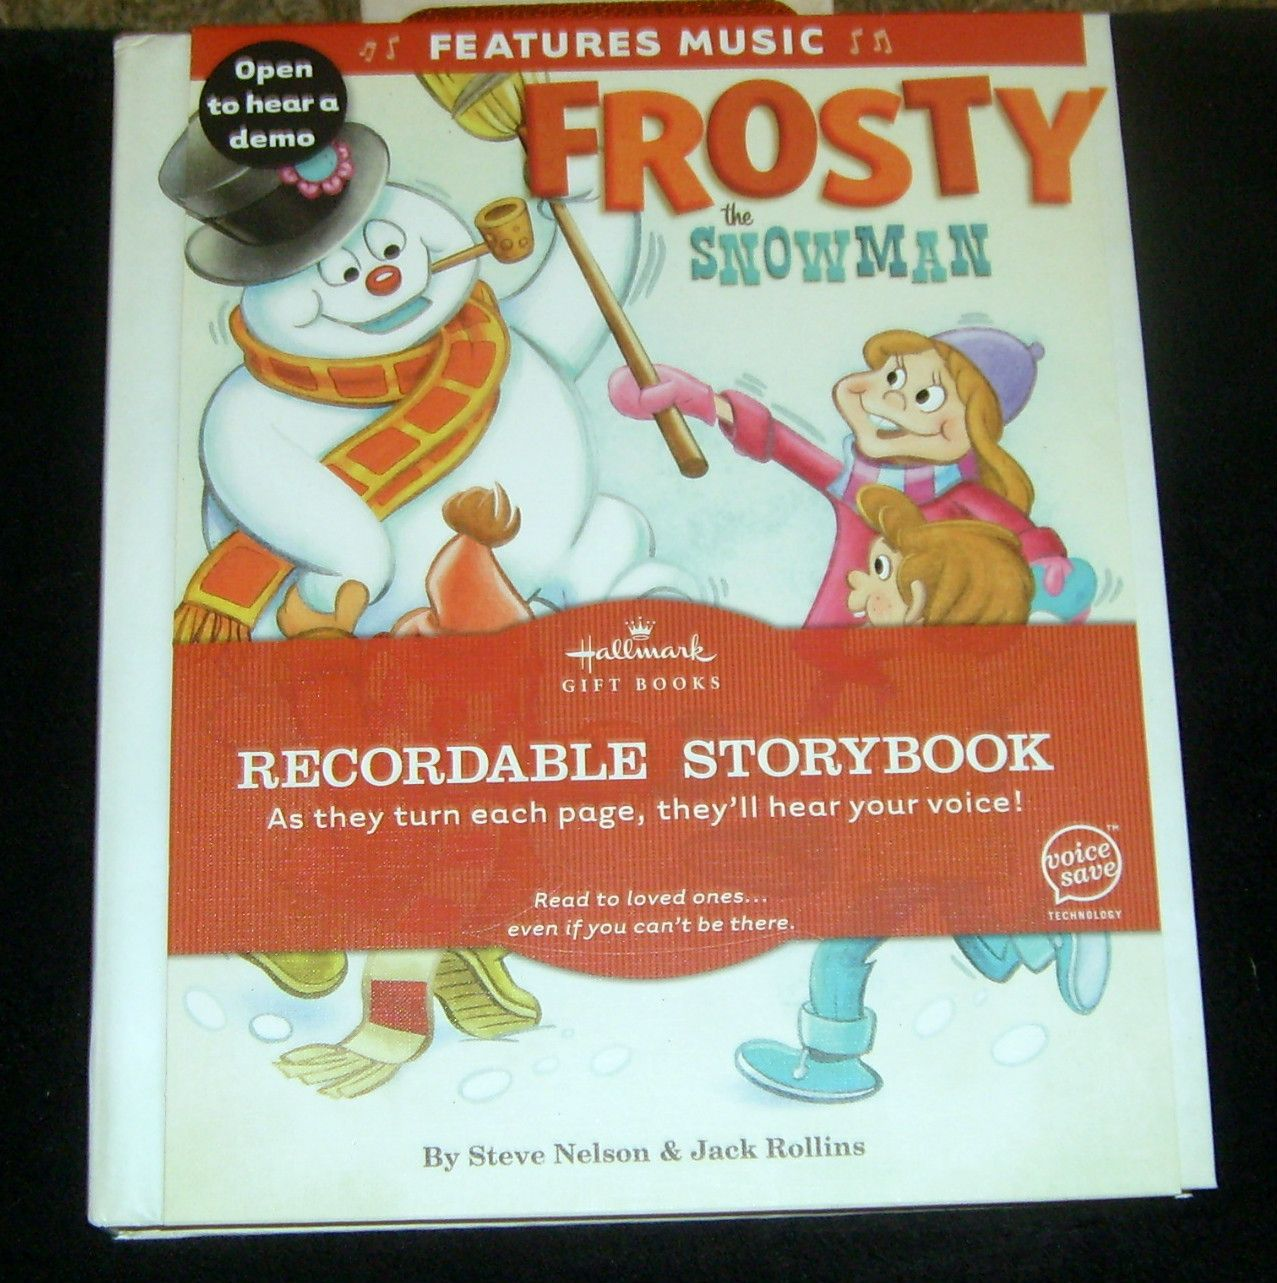 Hallmark Recordable Storybook Frosty The Snowman Features Music Bucher